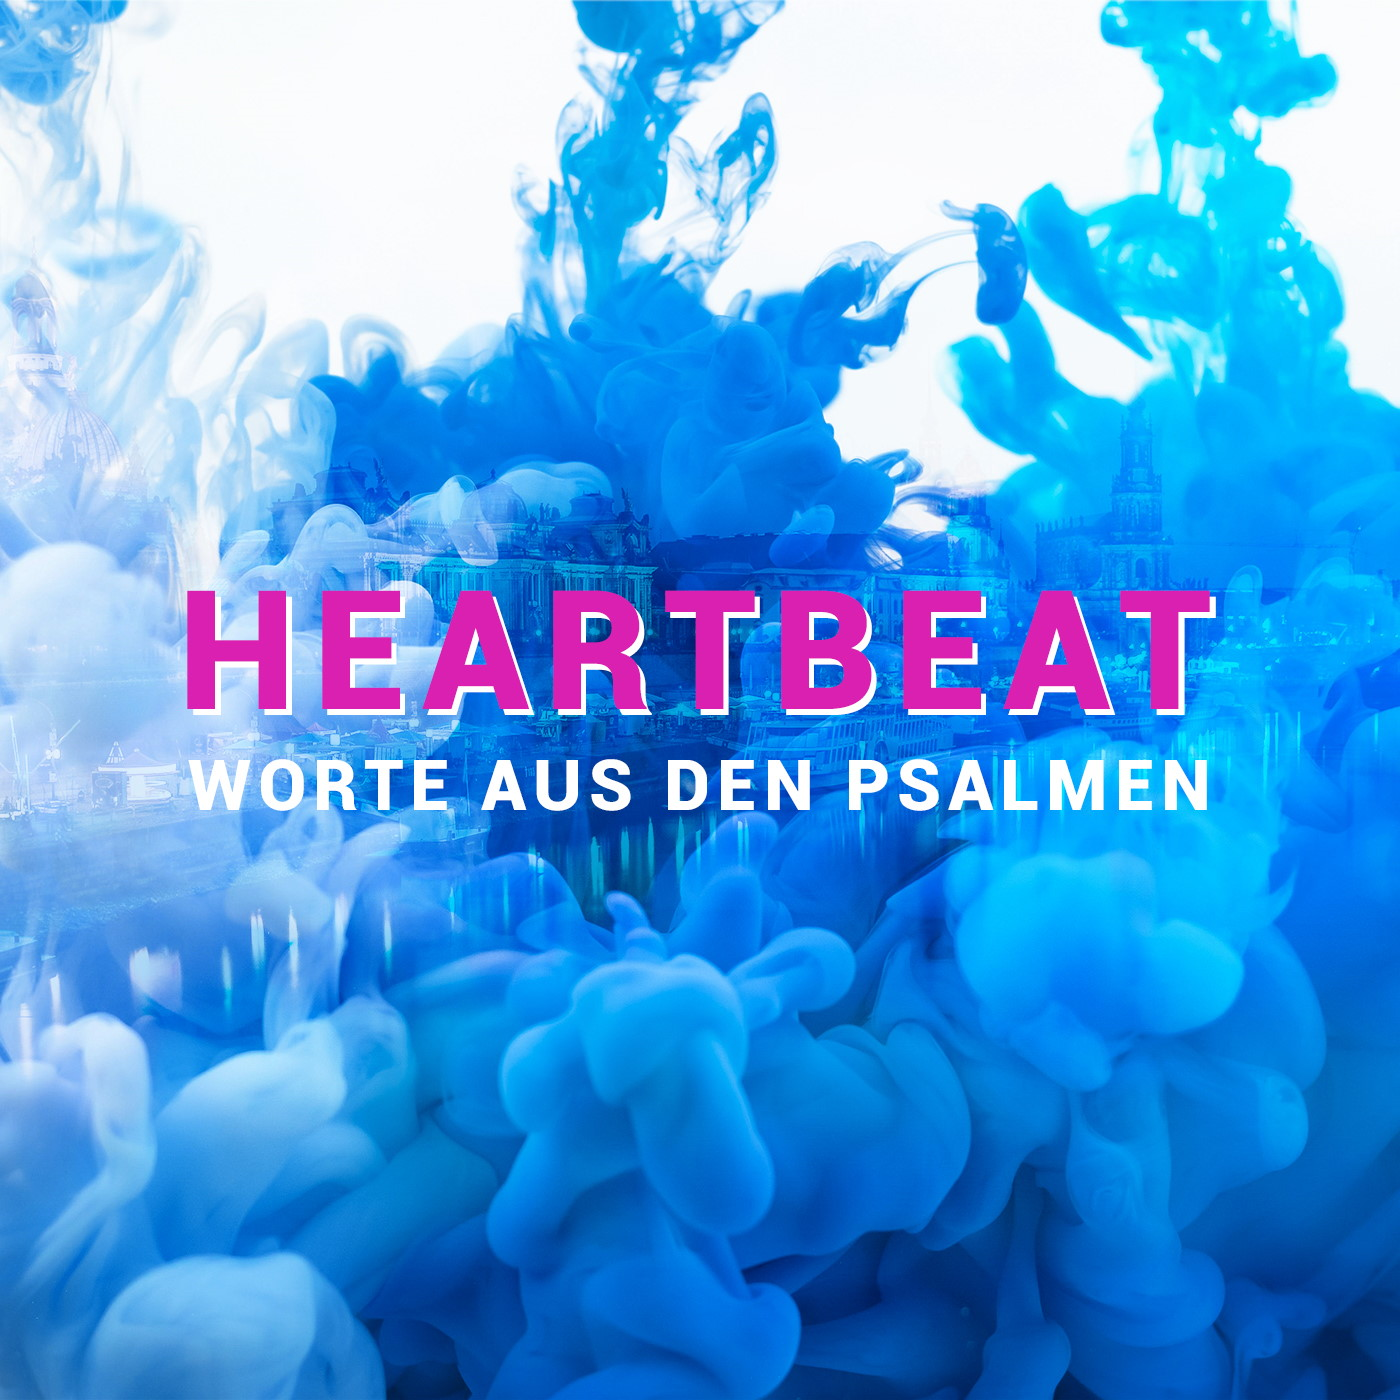 Heartbeat - Worte den Psalmen Teil 4 [video]